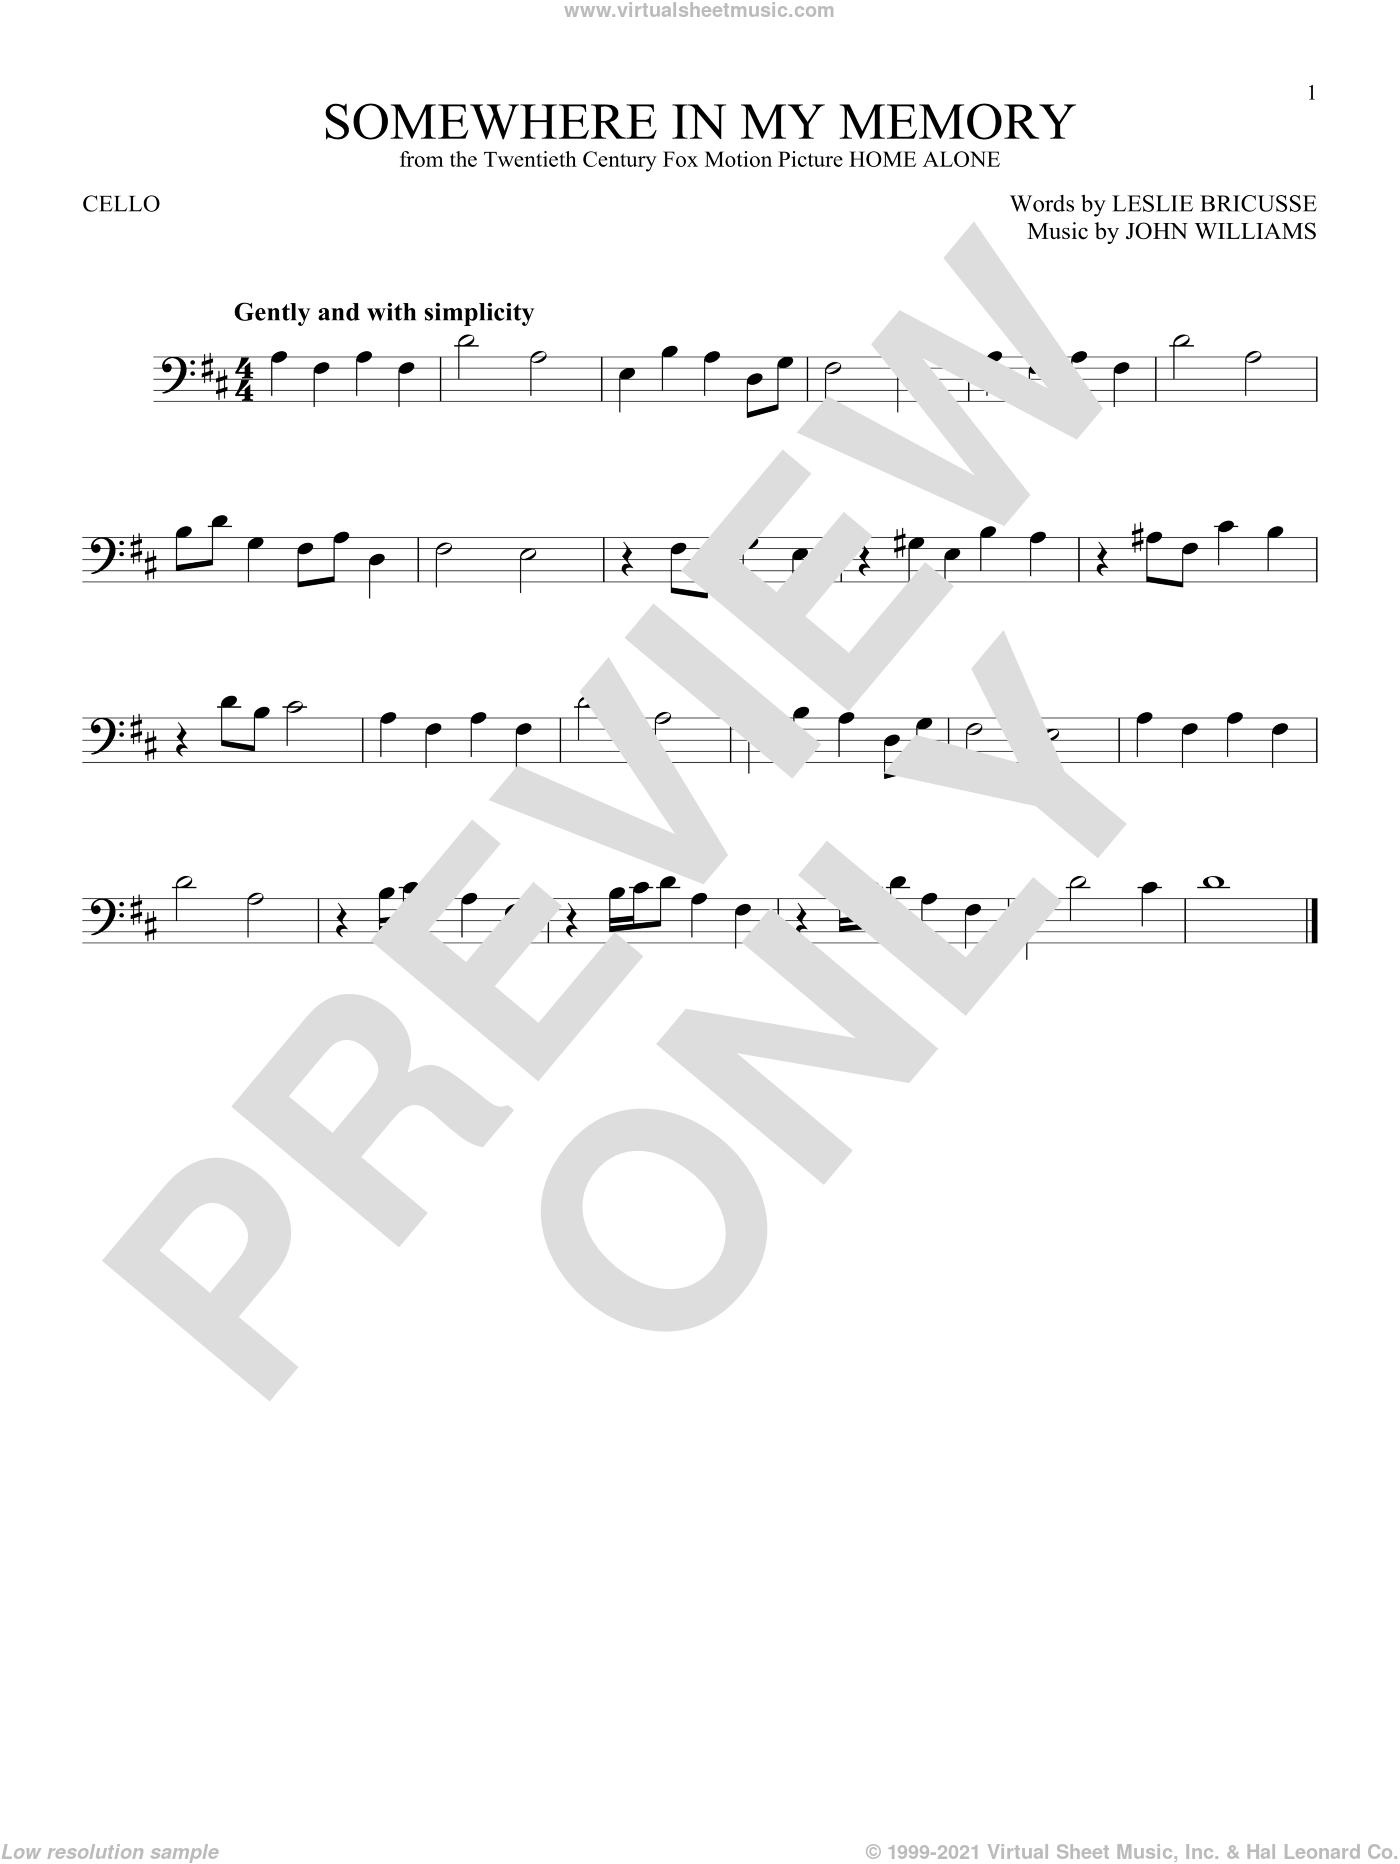 Somewhere In My Memory sheet music for cello solo by Leslie Bricusse and John Williams. Score Image Preview.